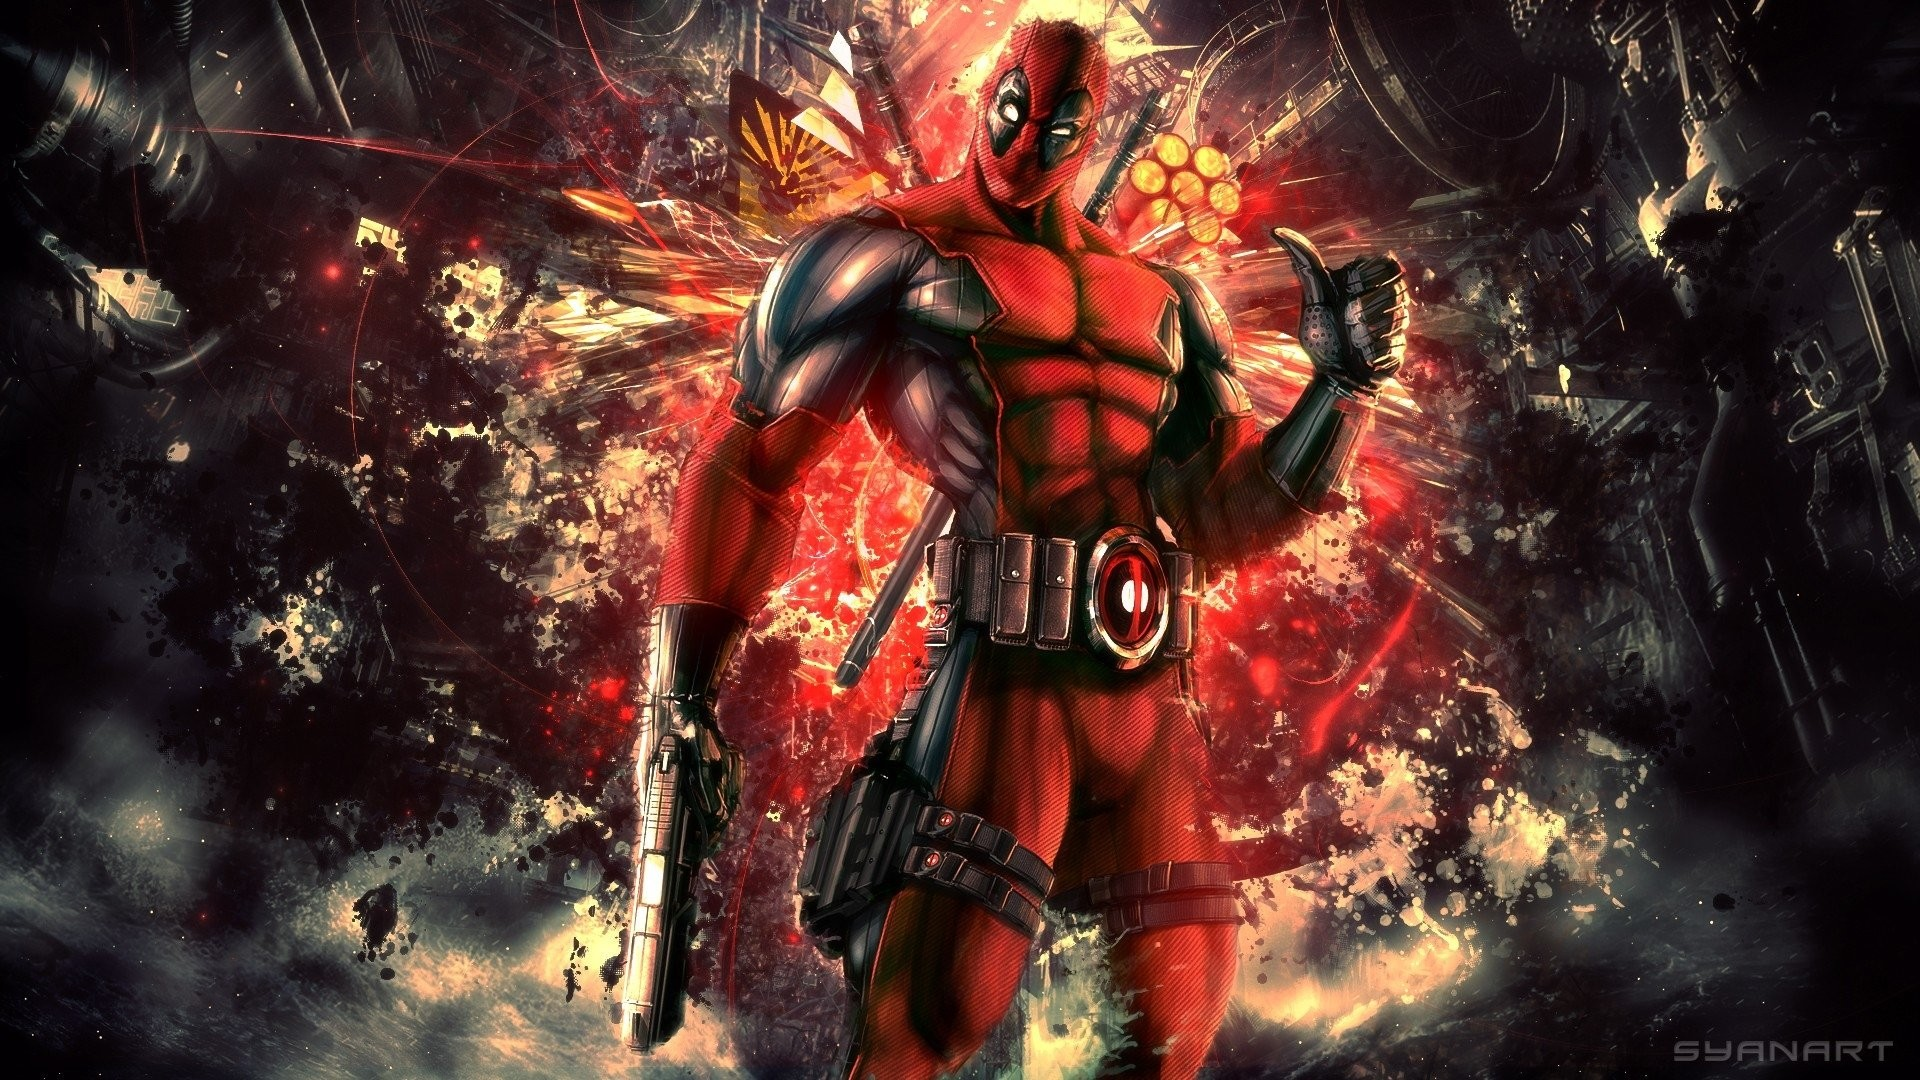 1920x1080 HD Wallpaper | Hintergrund ID:417300.  Comics Deadpool